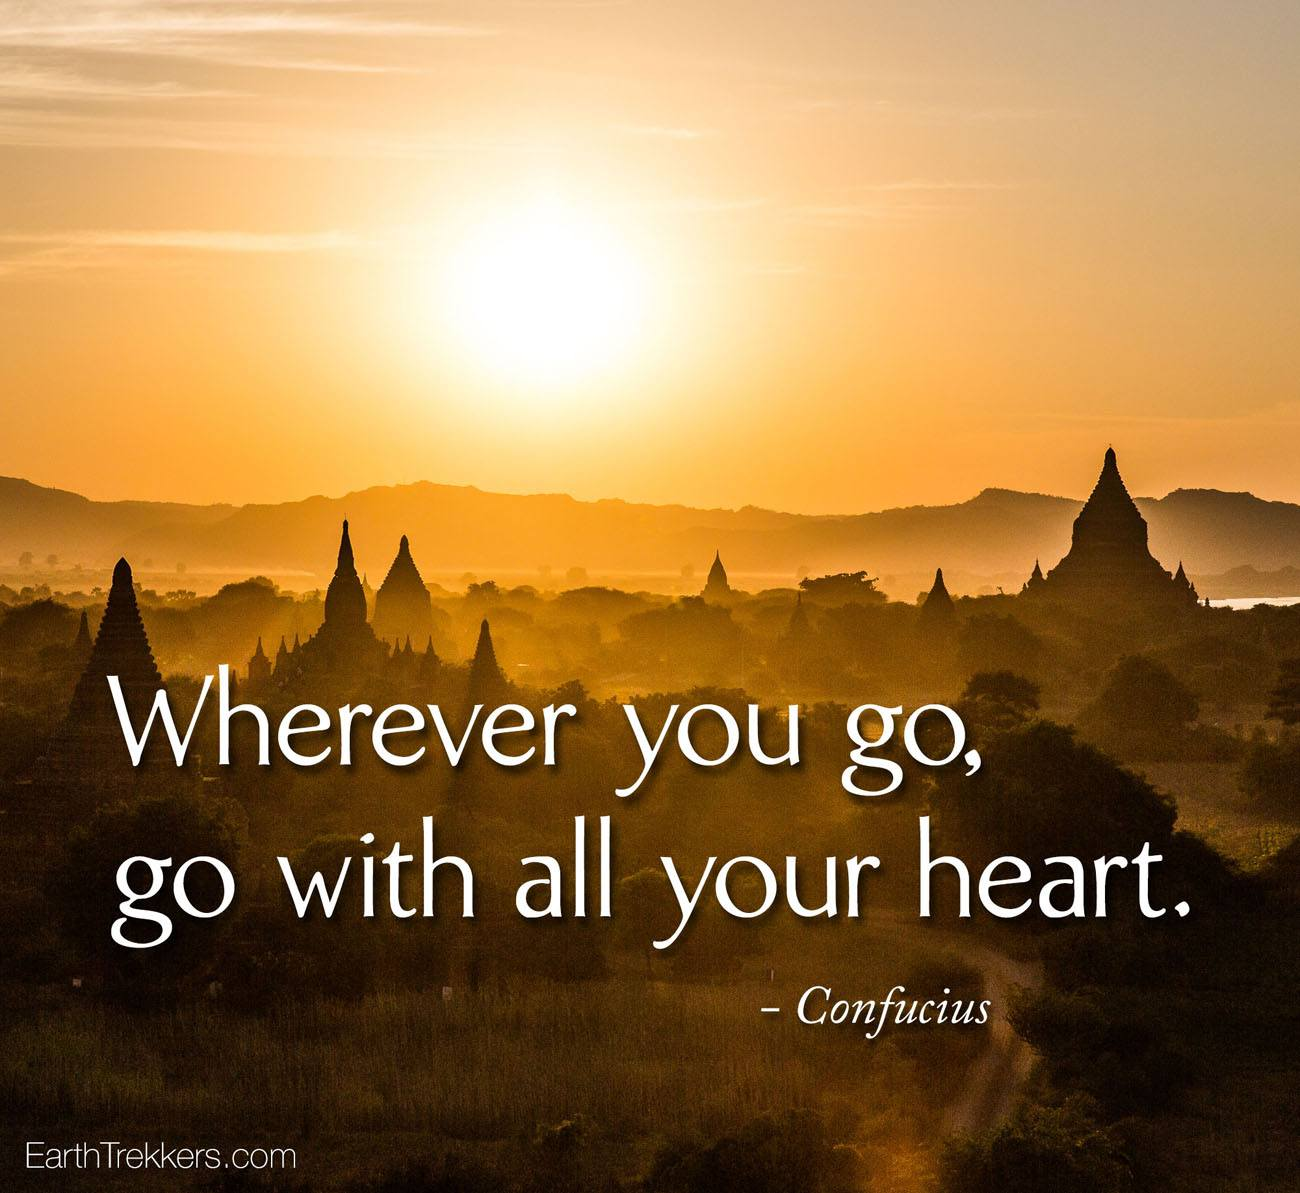 Quotes Quotes 60 Travel Quotes To Feed Your Wanderlust  Earth Trekkers